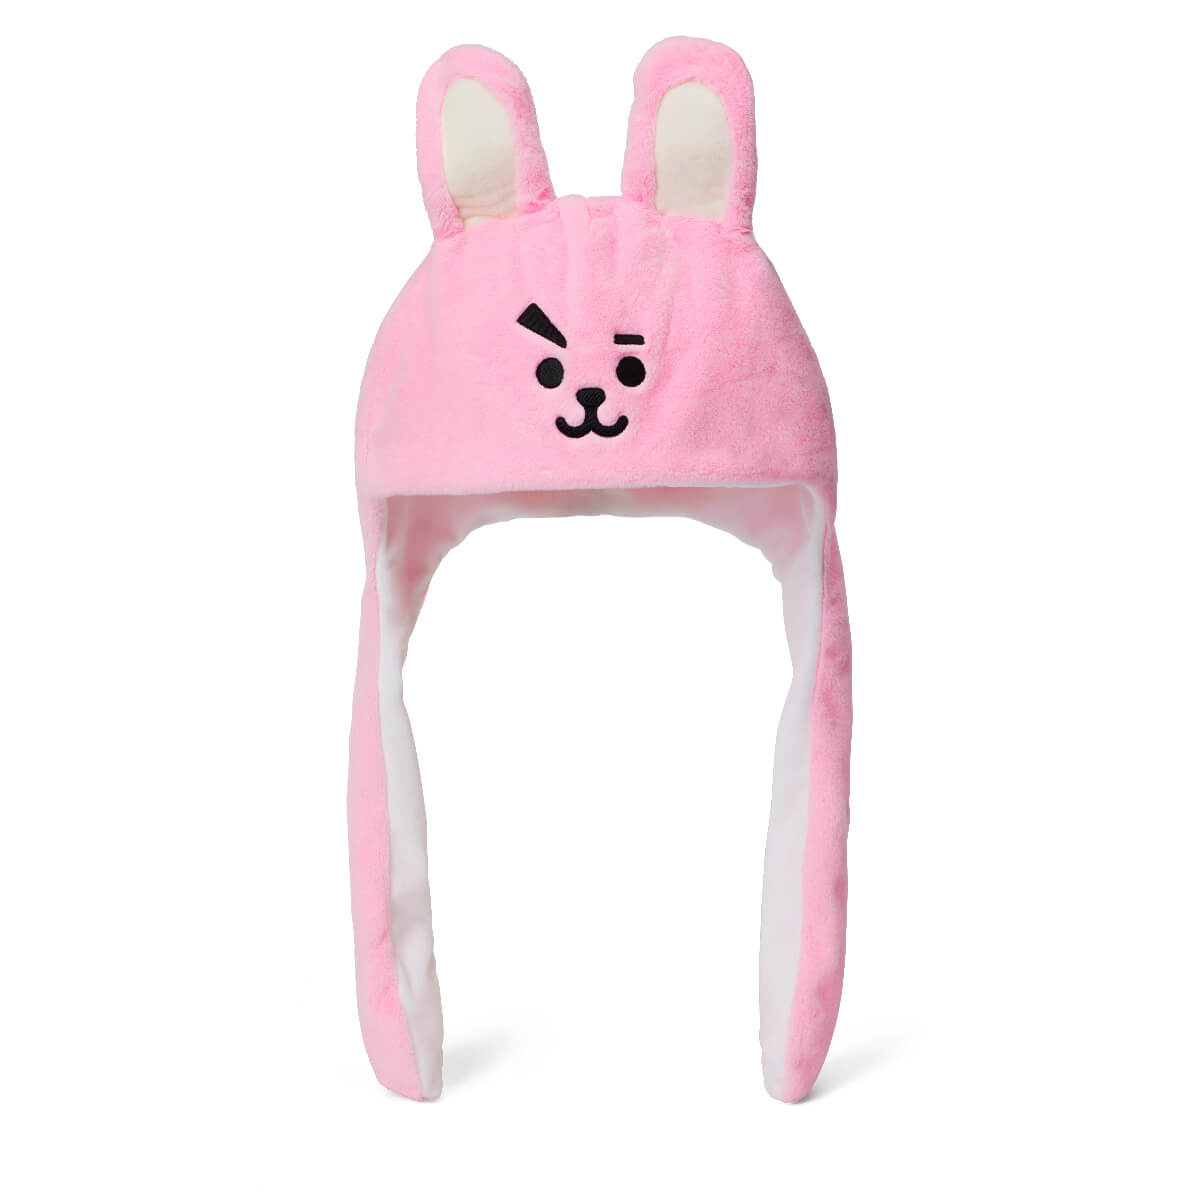 BT21 COOKY Plush Action Hat